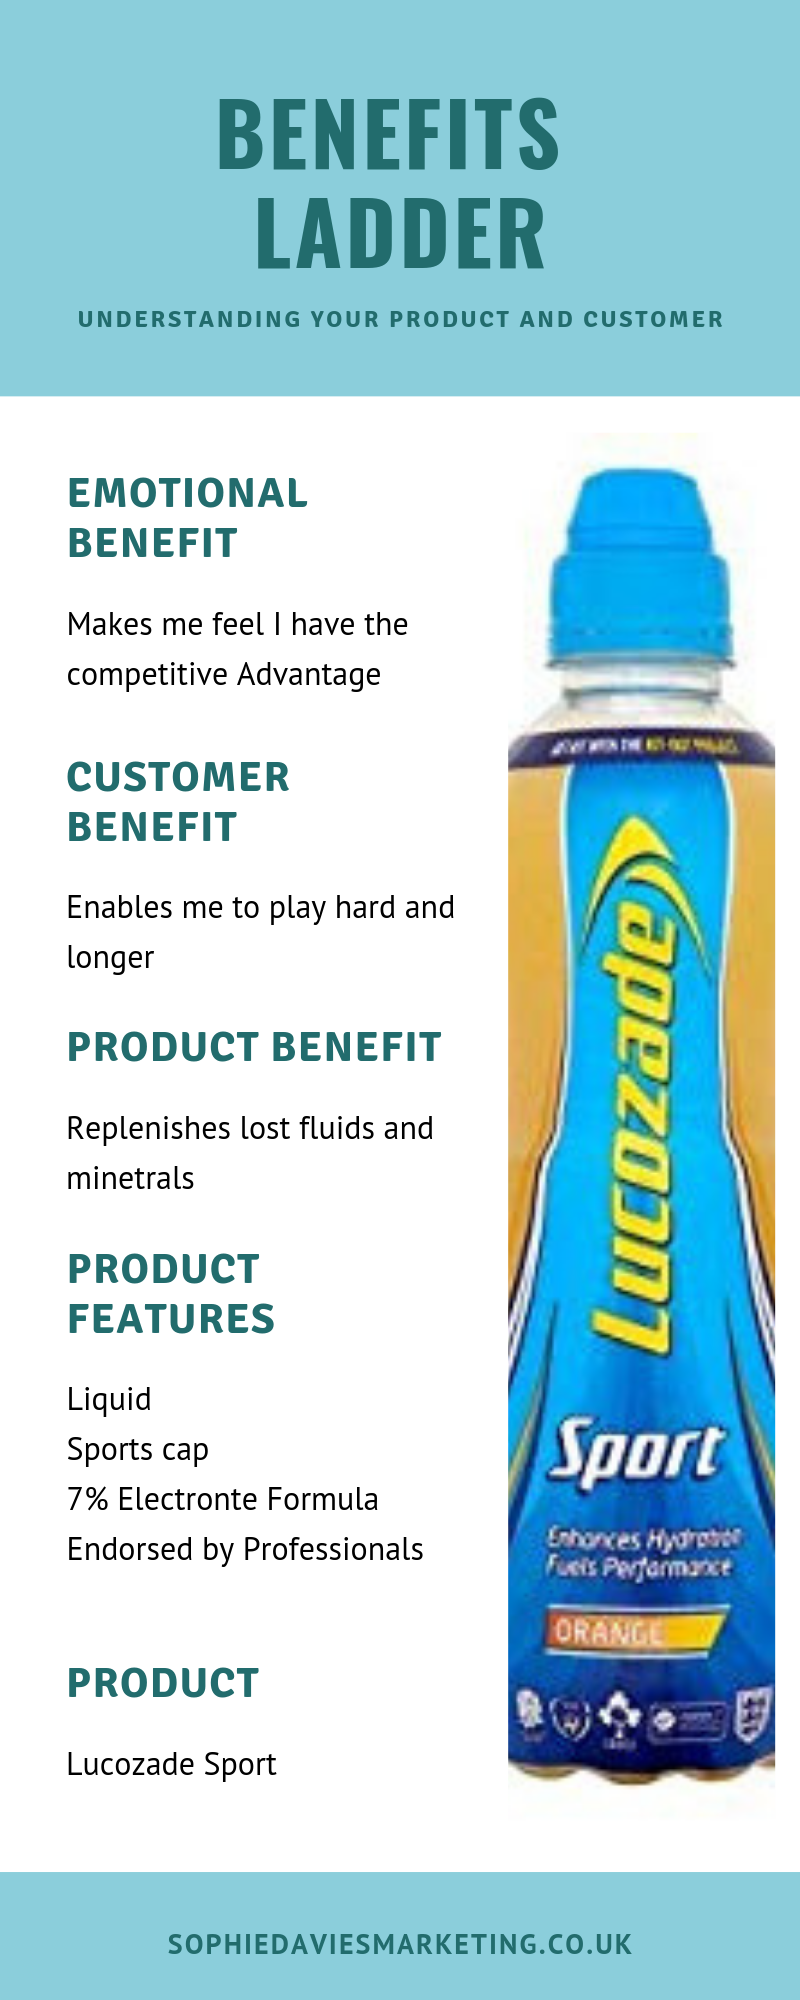 Lucozade Benefits Ladder